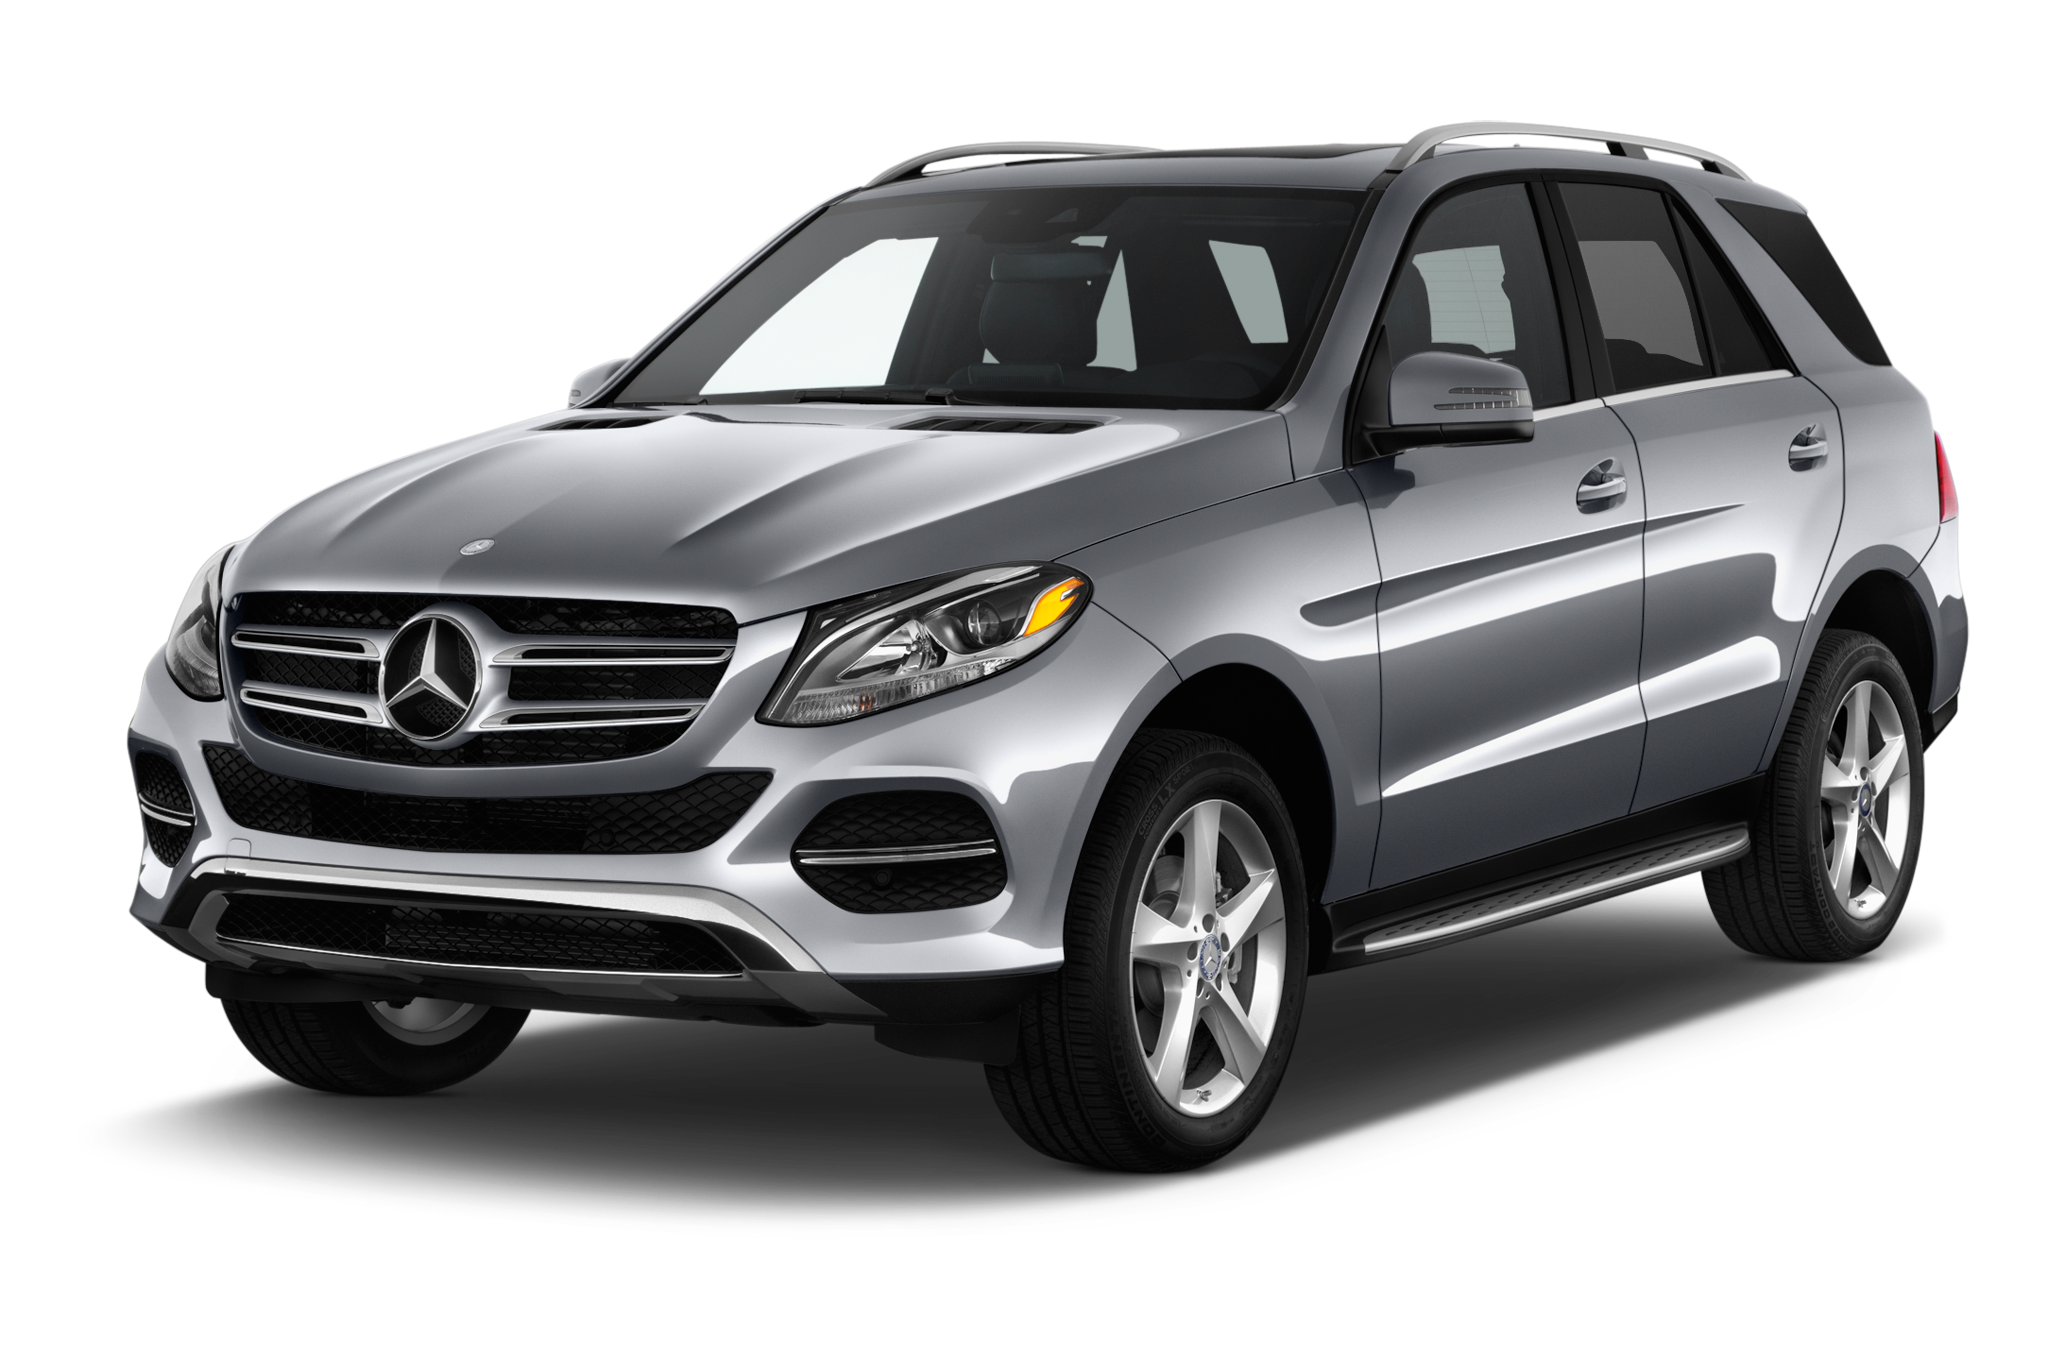 2017 mercedes benz gle class gle400 4matic engine for 2017 mercedes benz gle400 4matic